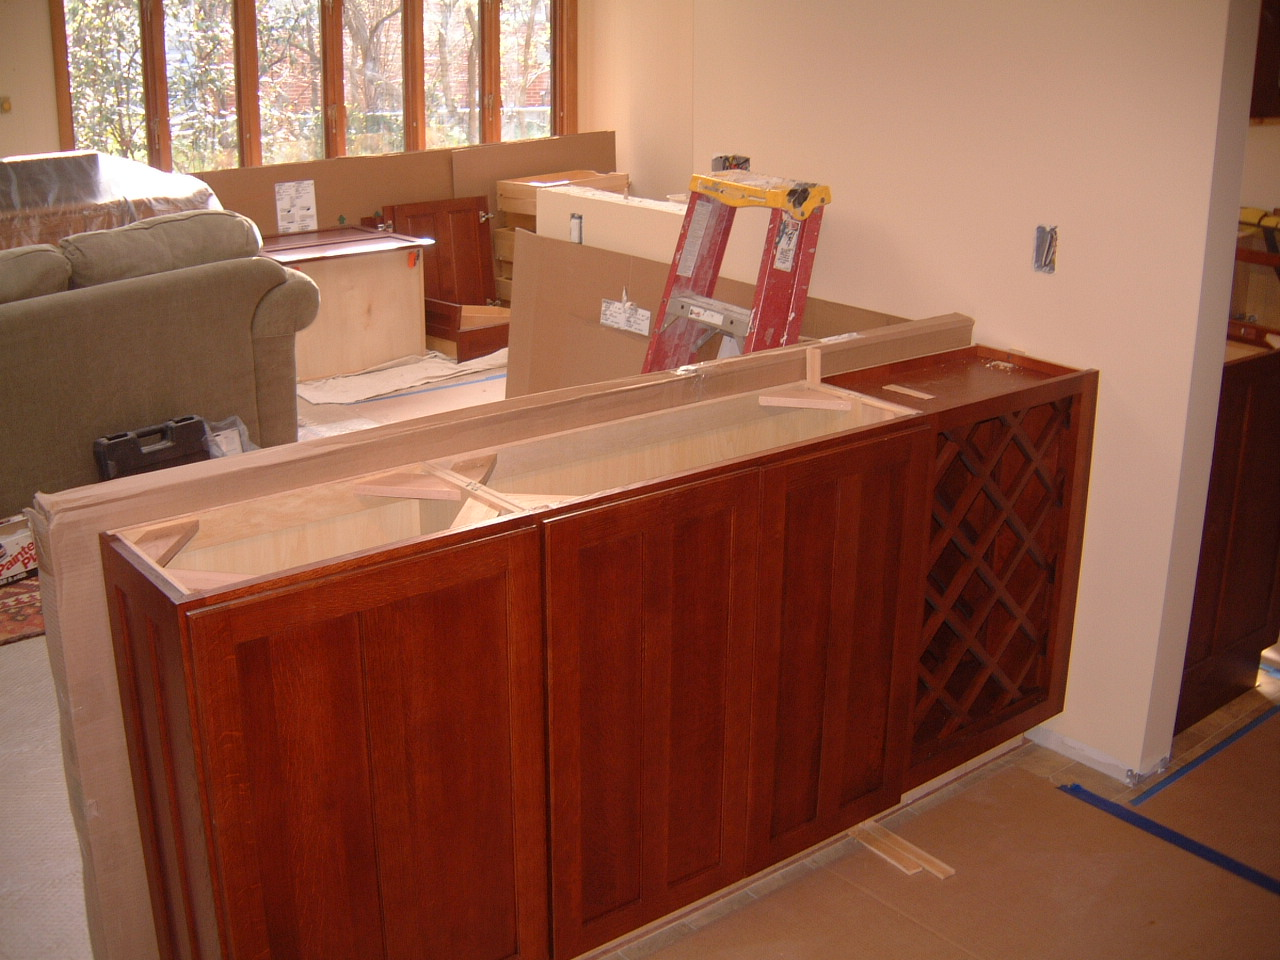 Dynasty Omega Kitchen Cabinets Springfield Kitchen Cabinet Install Remodeling Designs Inc